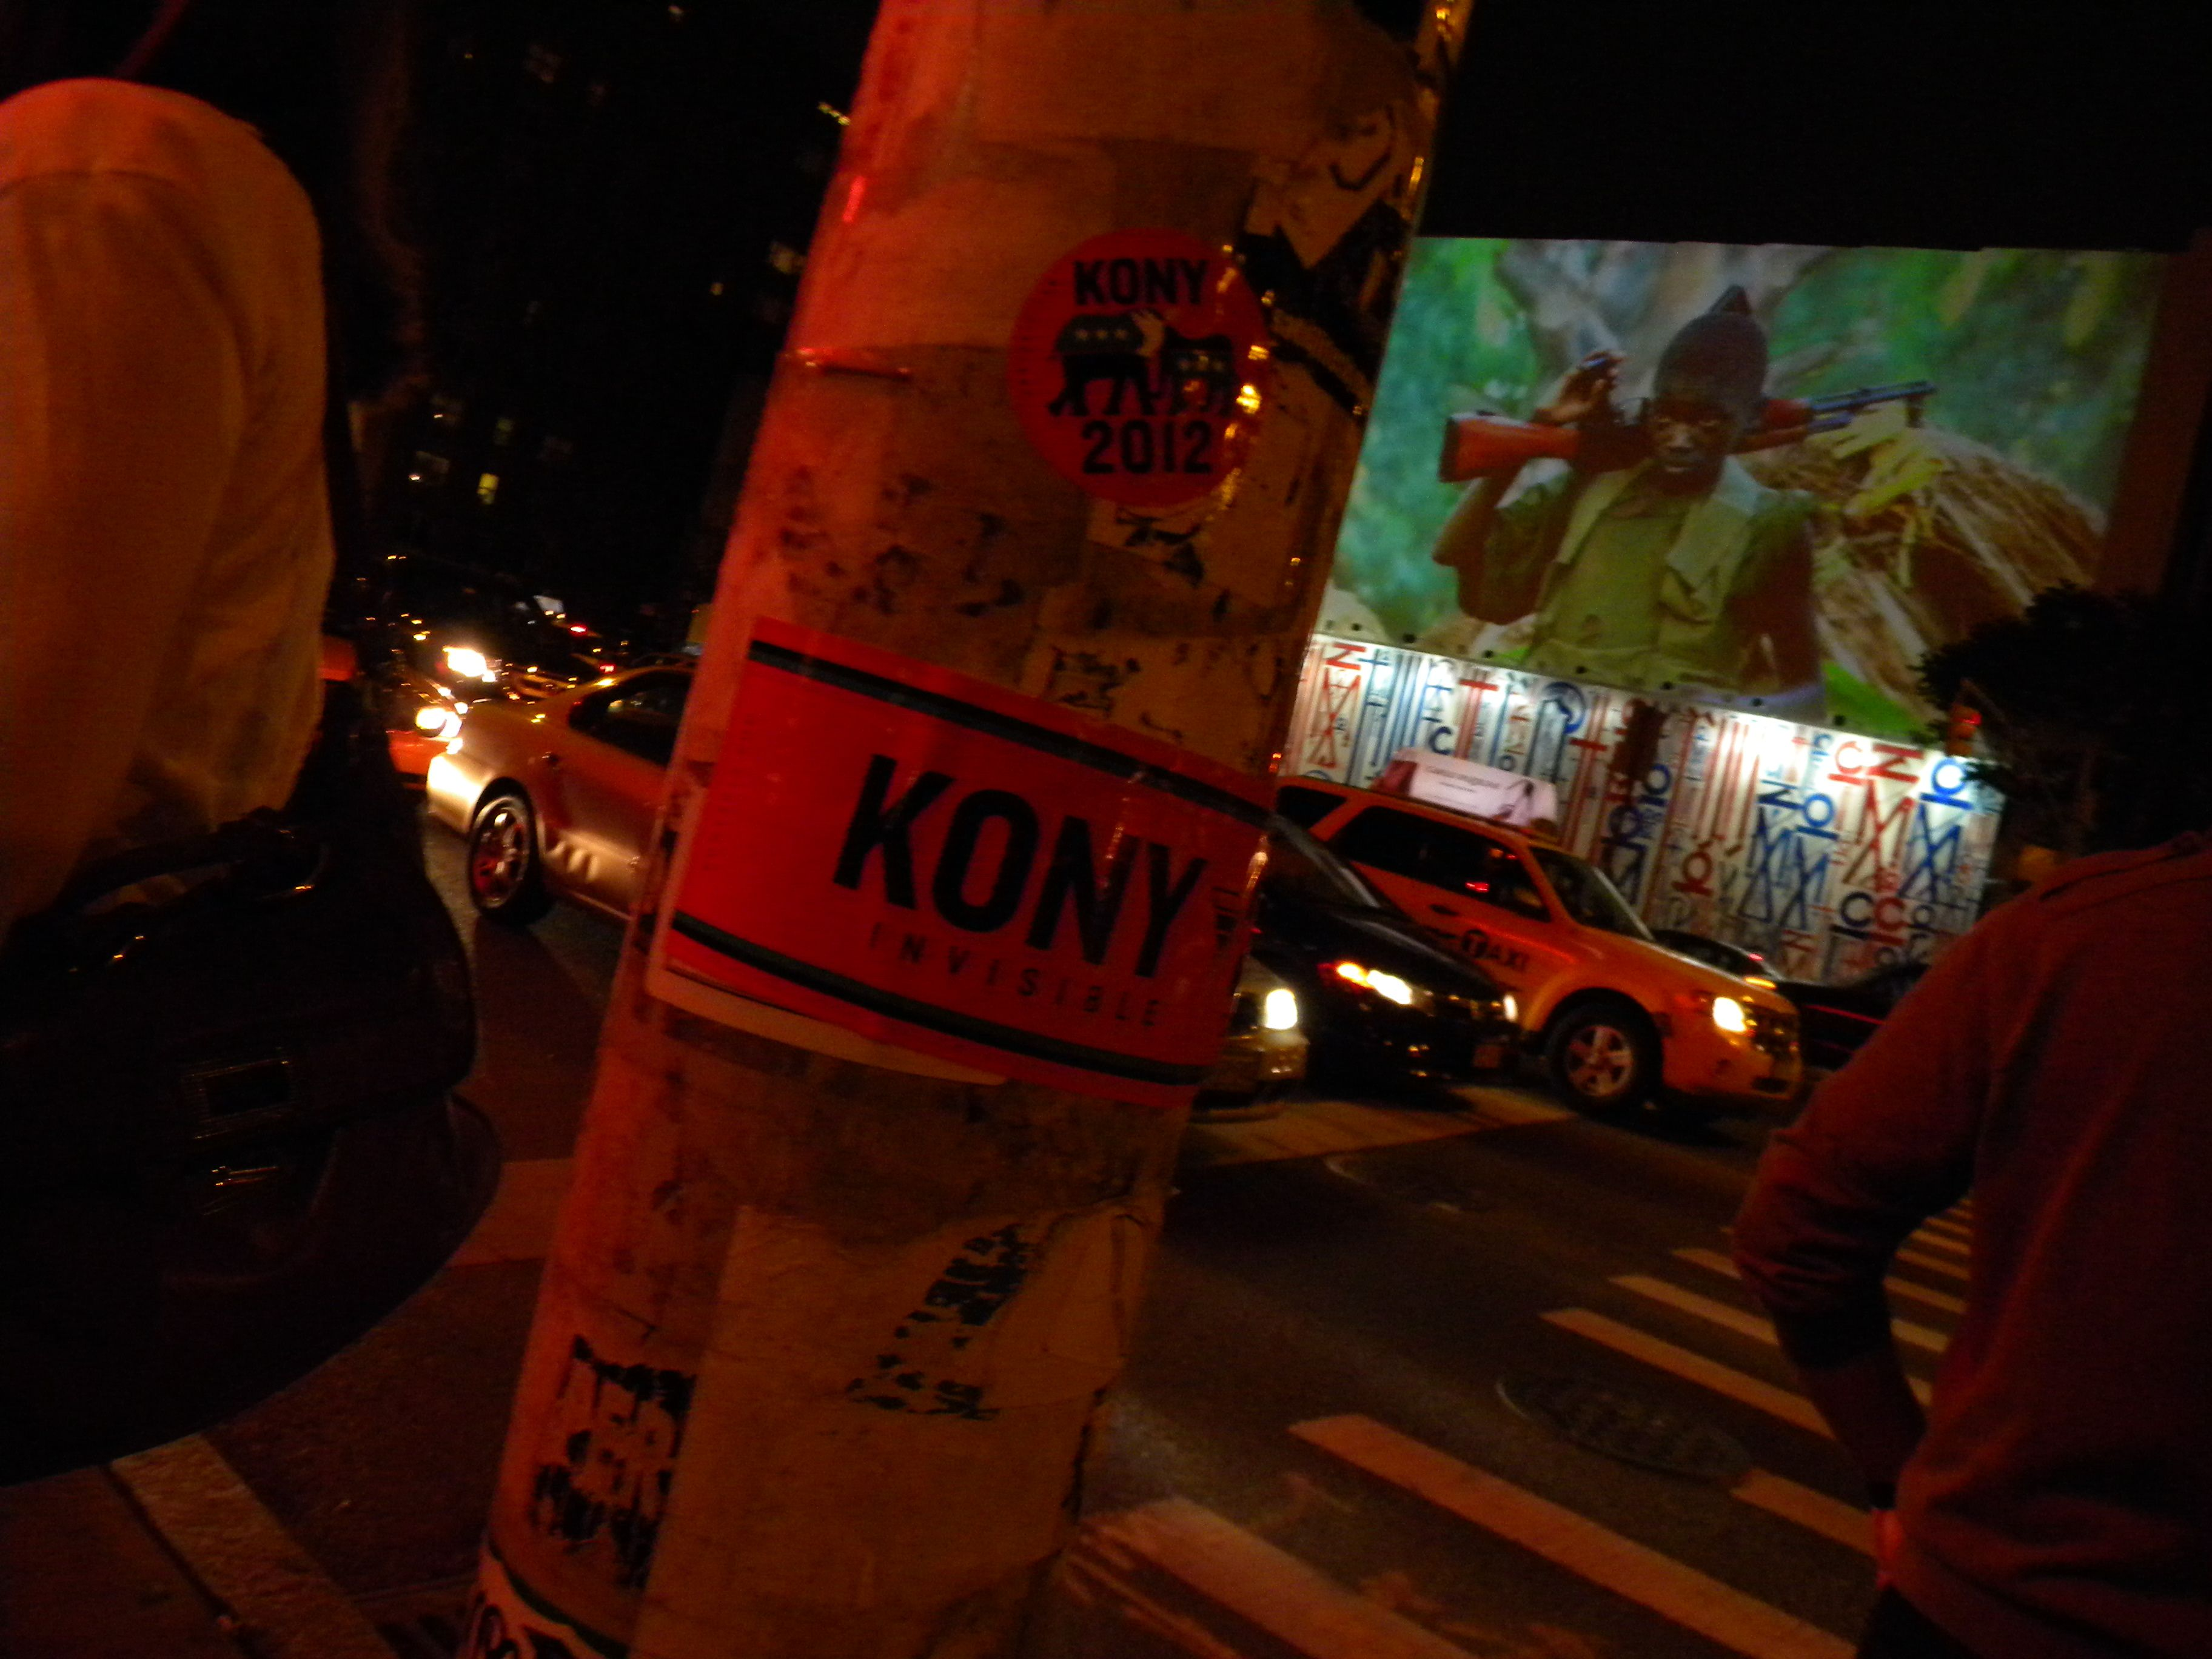 Kony 2012: Cover the night, NYC